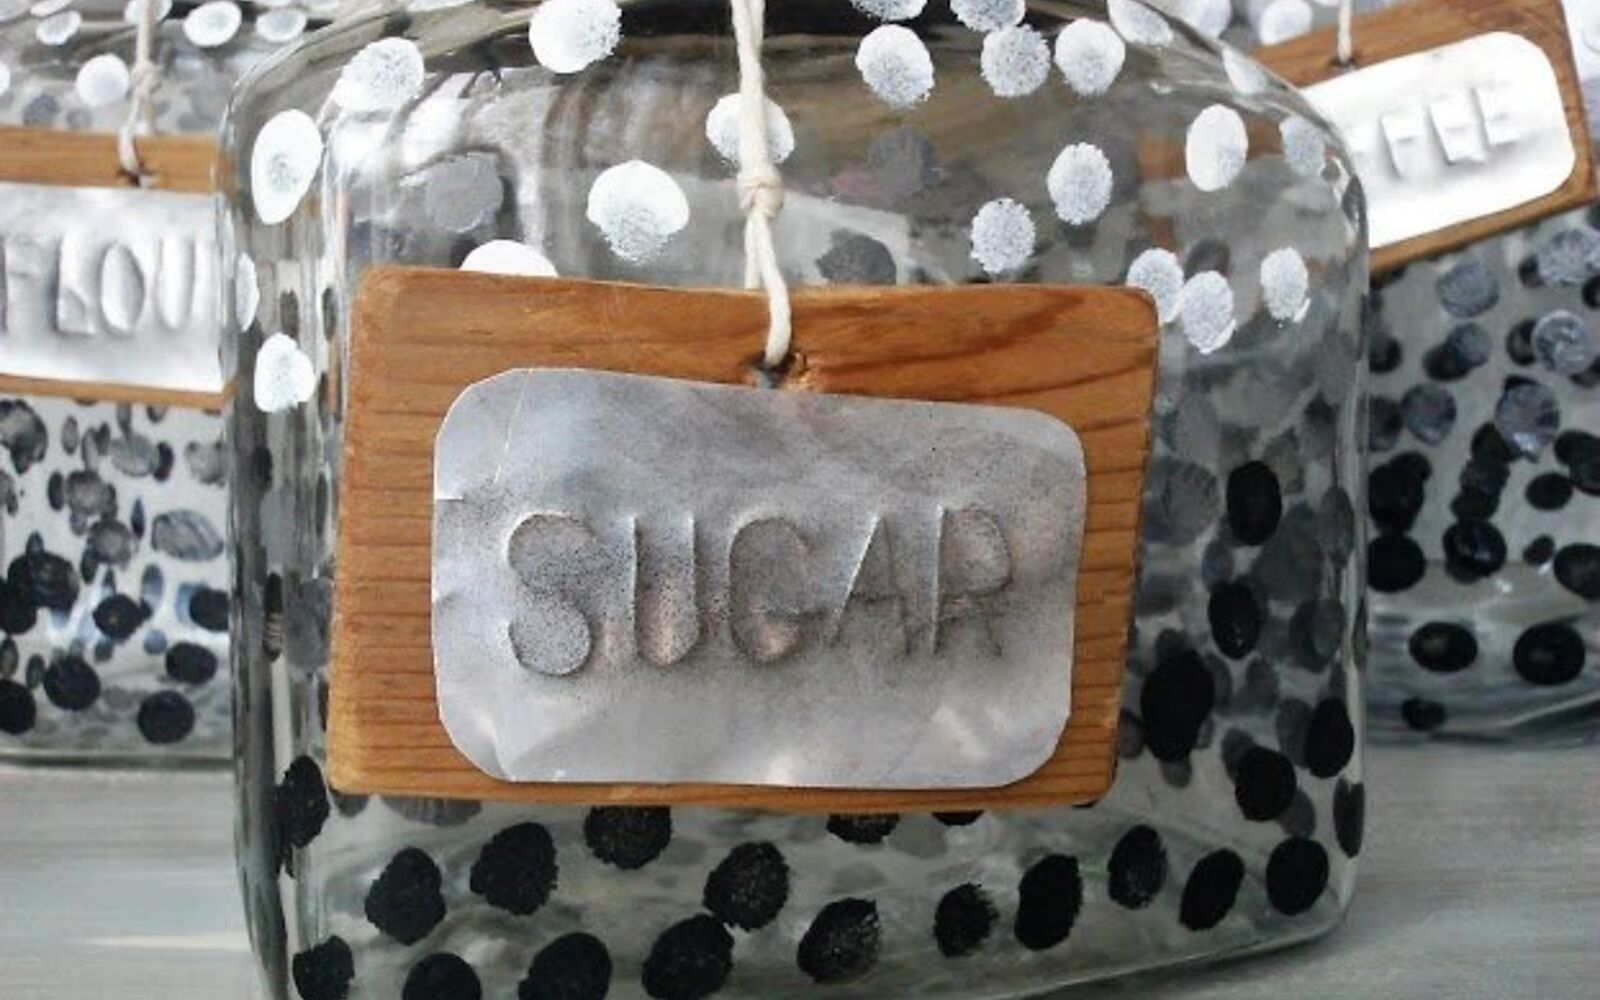 s save your old cans for these 30 home decor ideas, Emboss them into metal signs